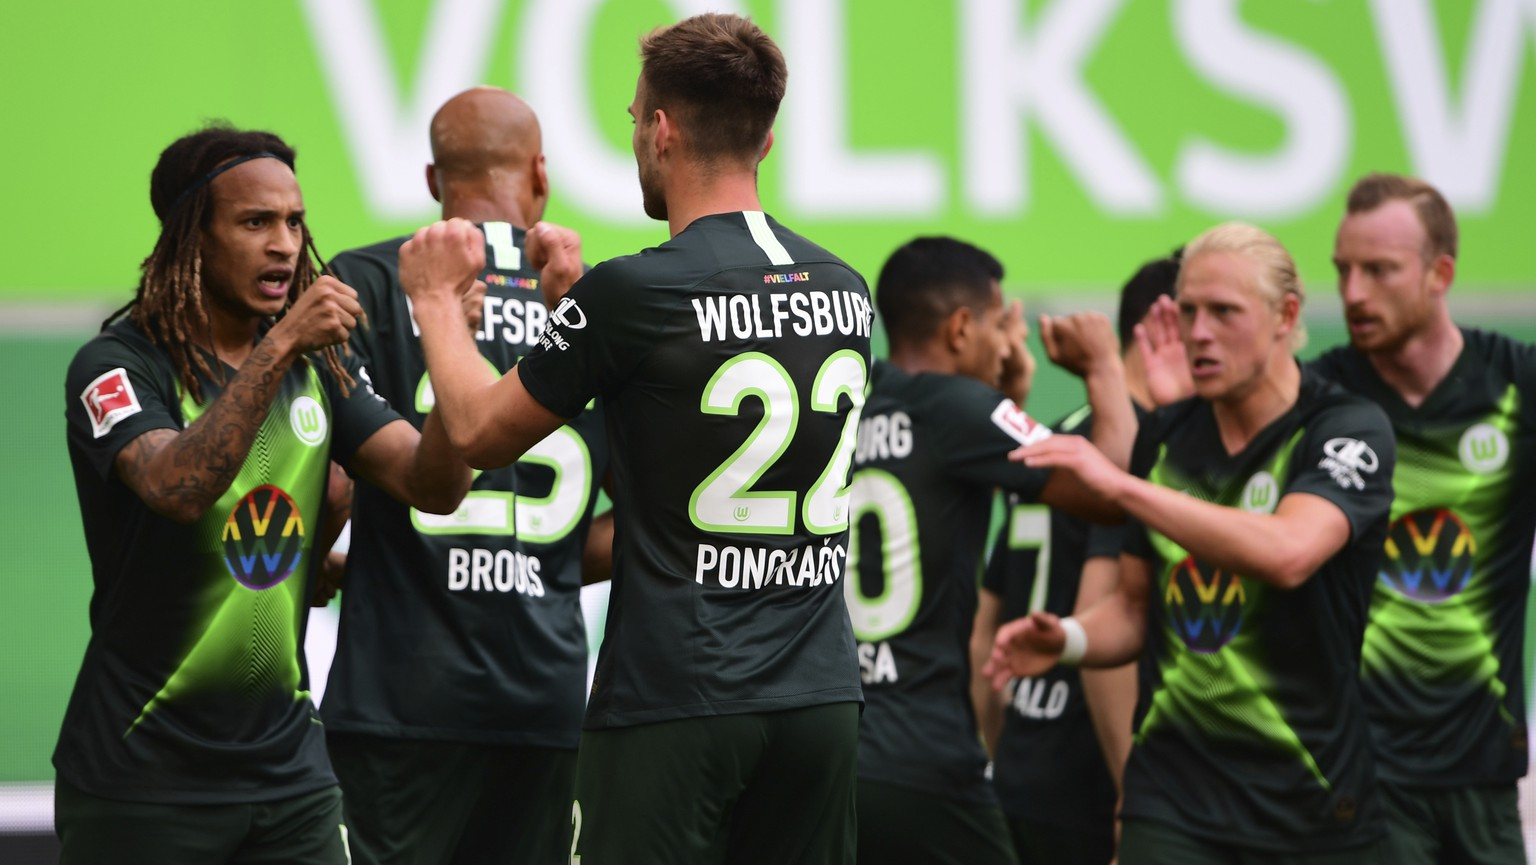 Wolfsburg's Kevin Mbabu, center, celebrates with team mate after scoring during the German Bundesliga soccer match between VfL Wolfsburg and Eintracht Frankfurt in Wolfsburg, Germany, Saturday, May 30, 2020. Because of the coronavirus outbreak all soccer matches of the German Bundesliga take place without spectators. (Swen Pfoertner/Pool via AP)